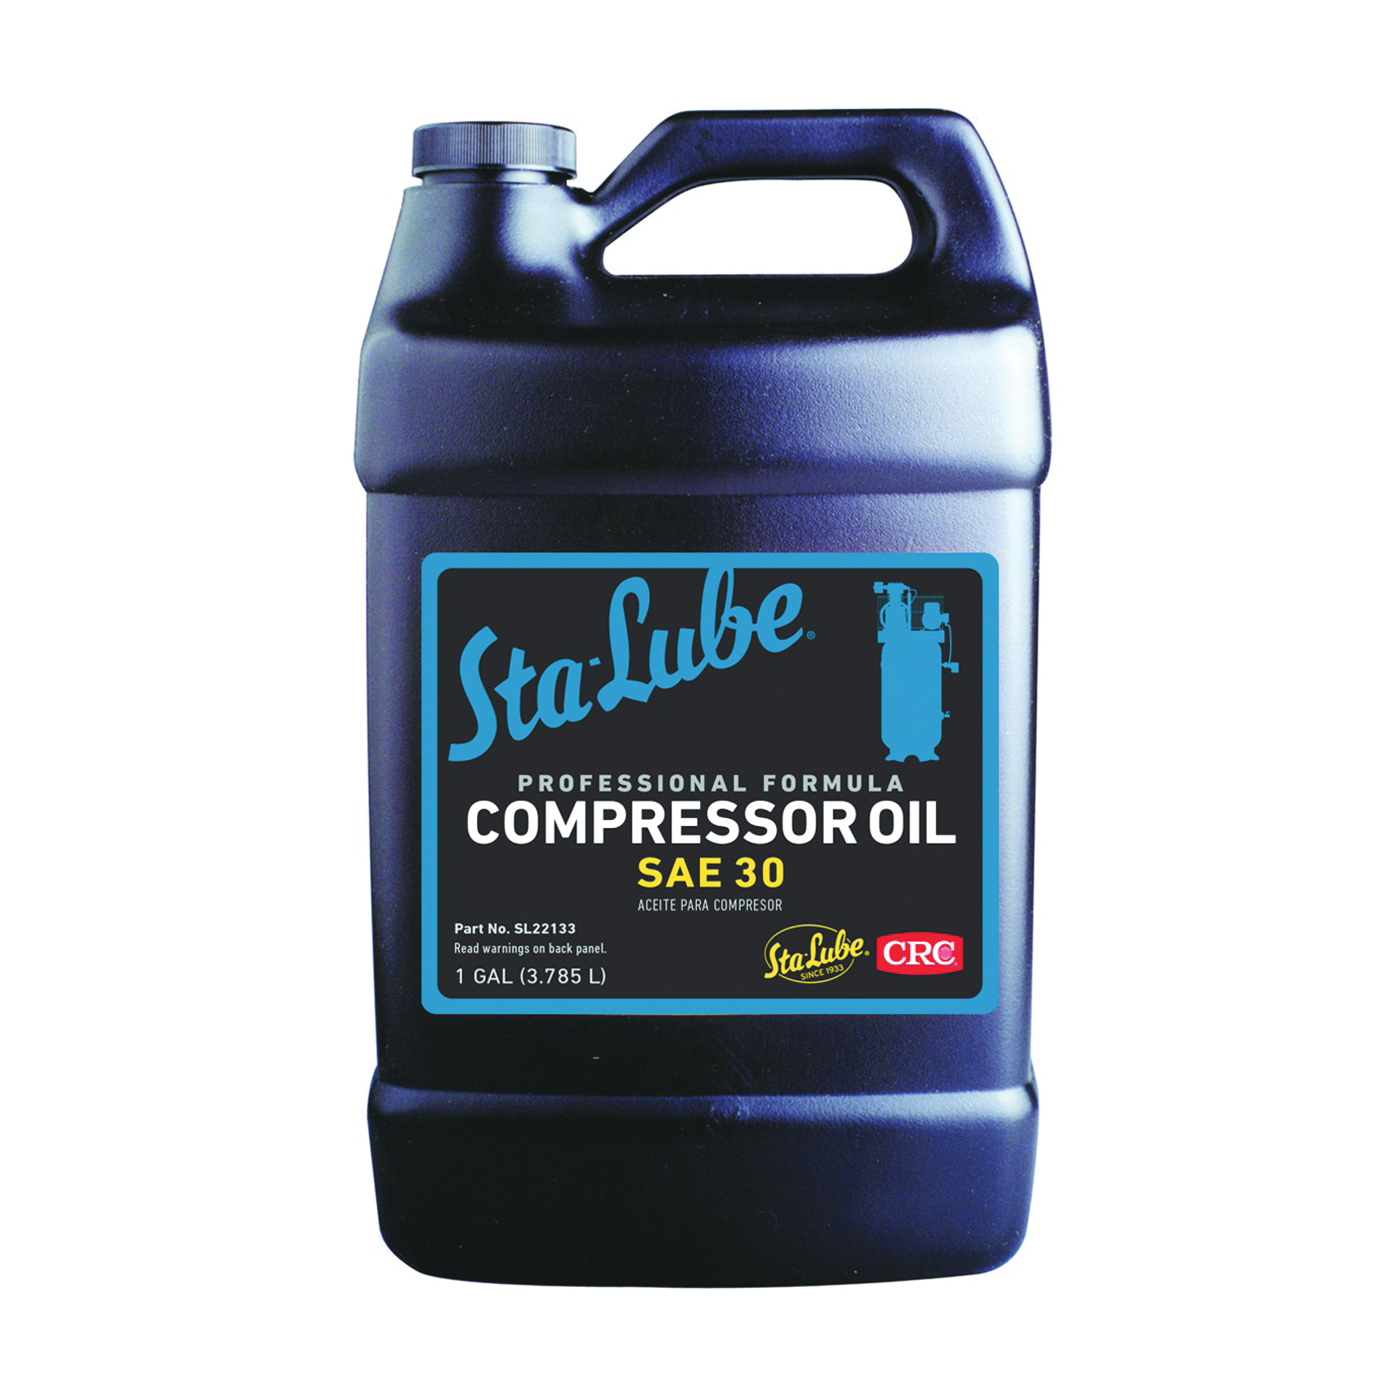 Picture of CRC Sta-Lube SL22133 Air Compressor Oil